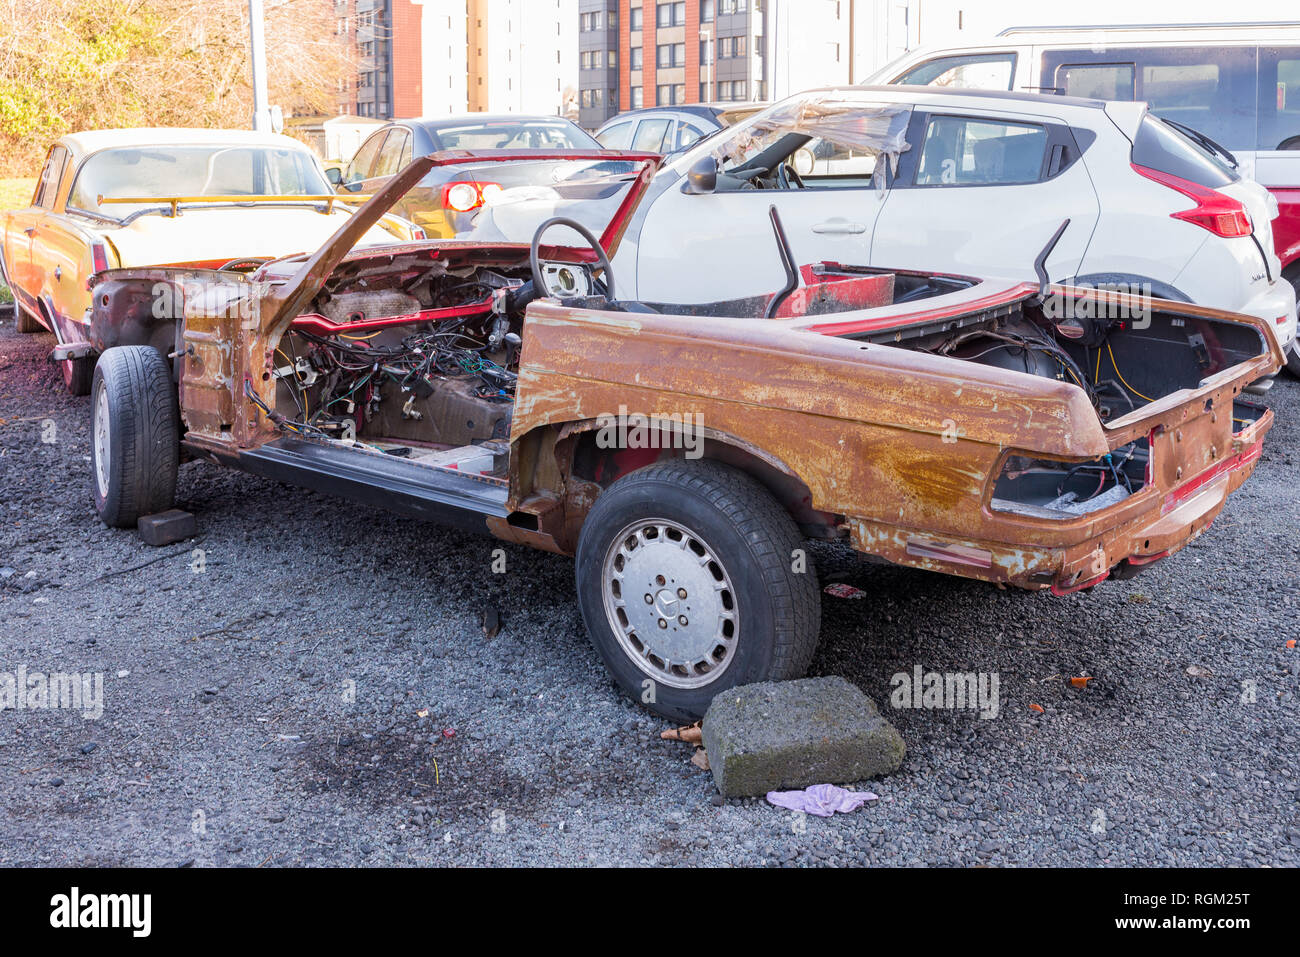 Car Body Shell Stock Photos & Car Body Shell Stock Images - Alamy